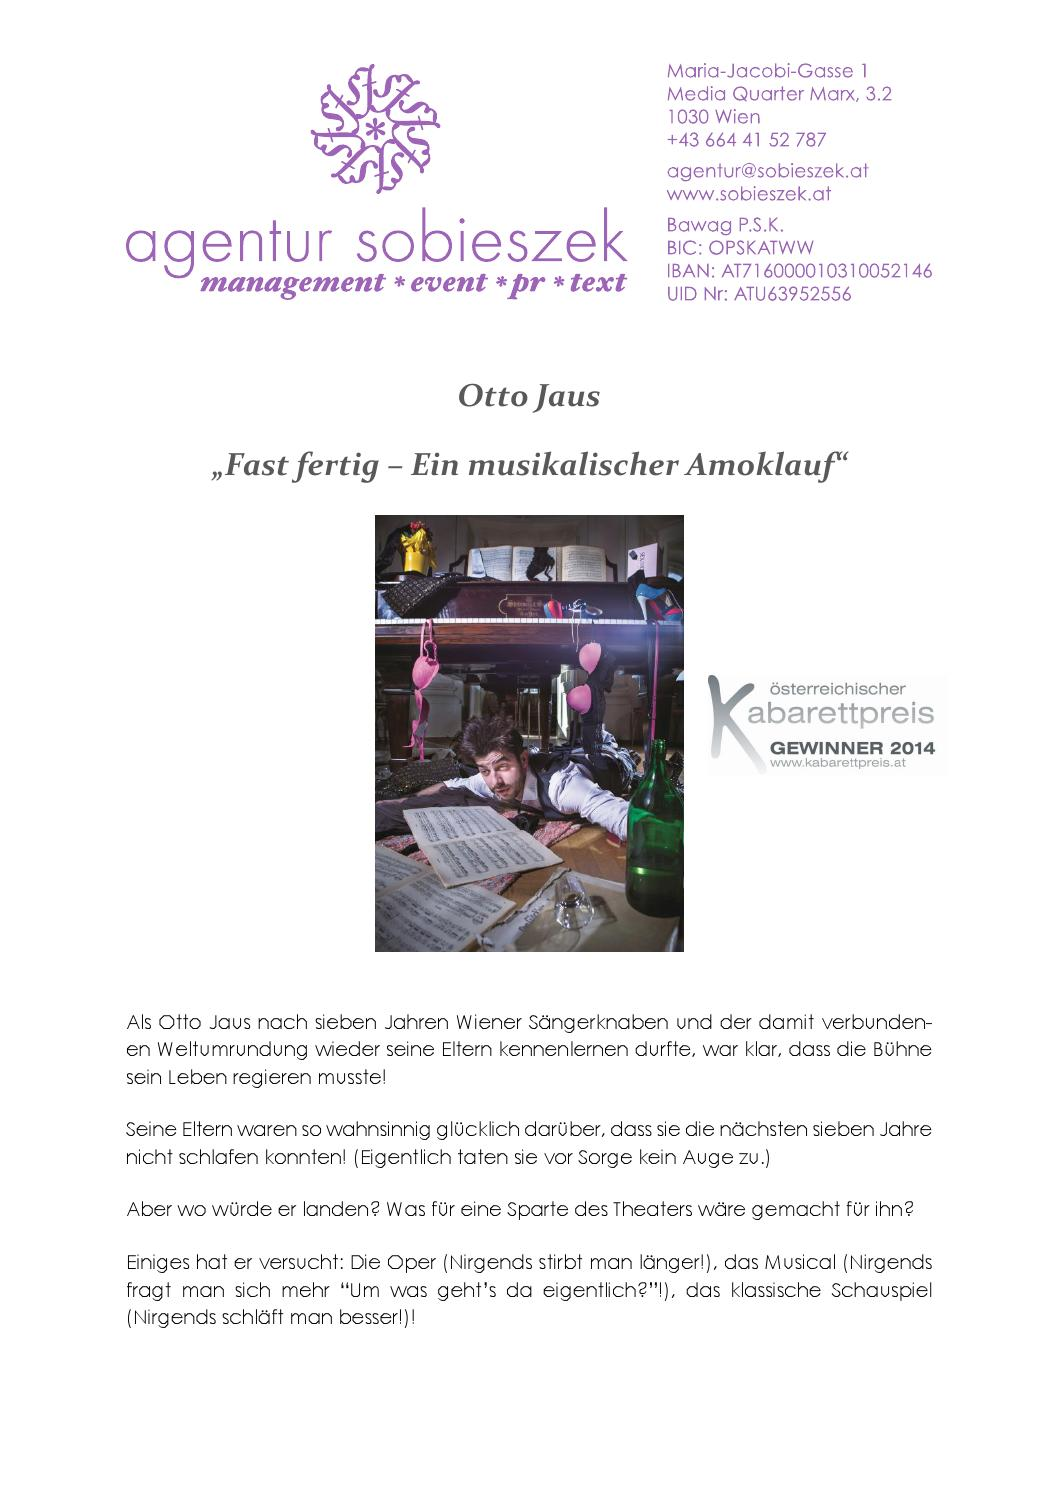 join. agree single frauen singen thought differently